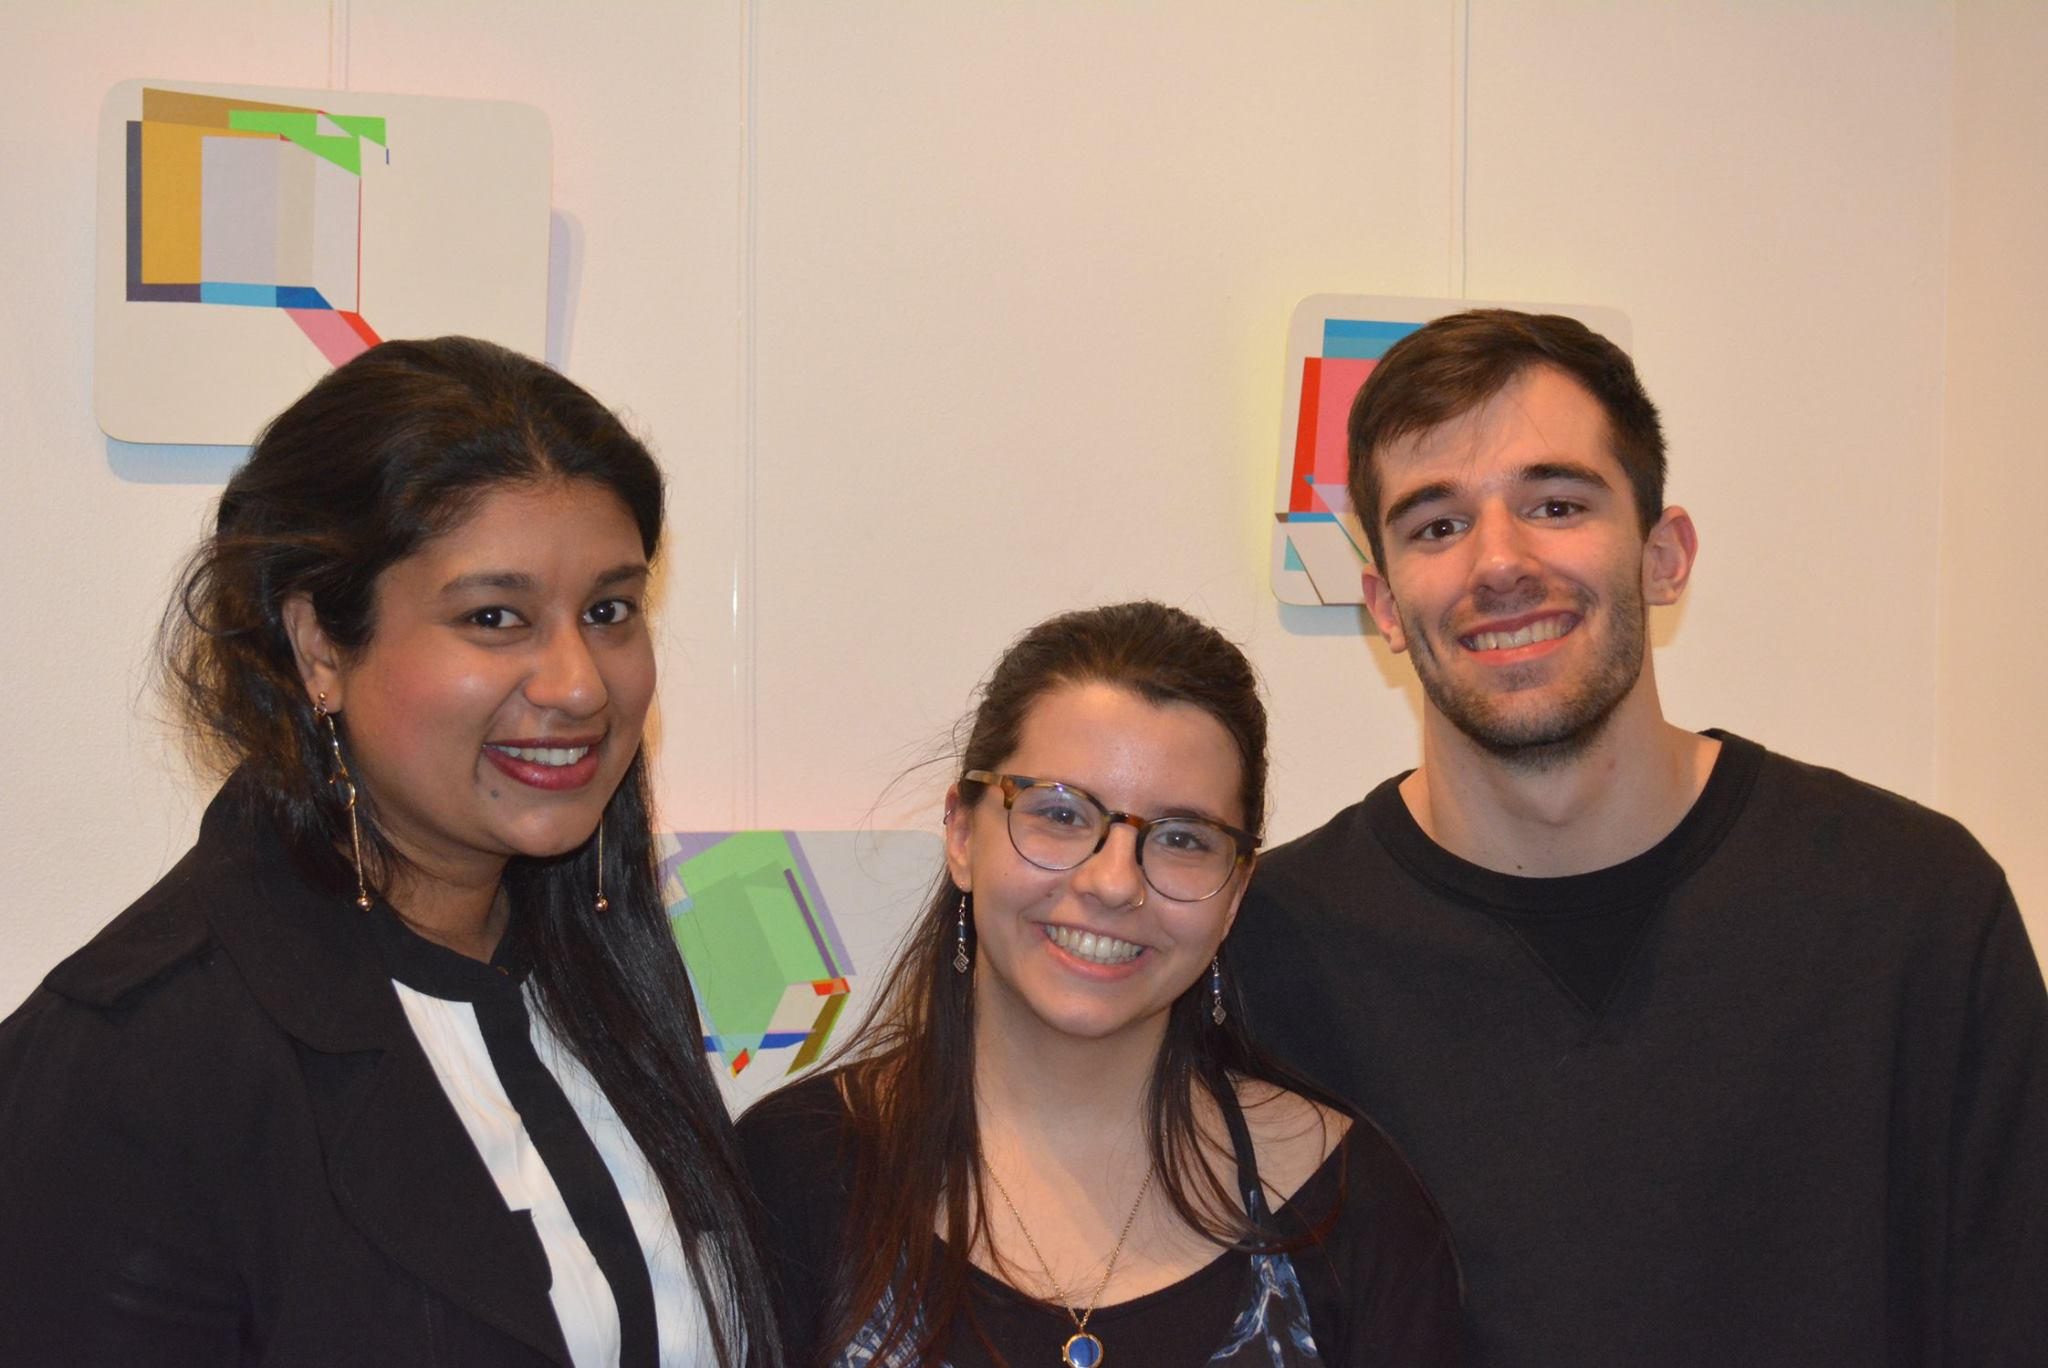 Rddhima Golyan, a Senior in Interior Design, Laura Arike, a Sophomore majoring in Art History, and Adam Colello, a Sophomore majoring in photography, represented an important change in the Gallery House Internship Program. Previously the program succeeded in mostly attracting graduate students.